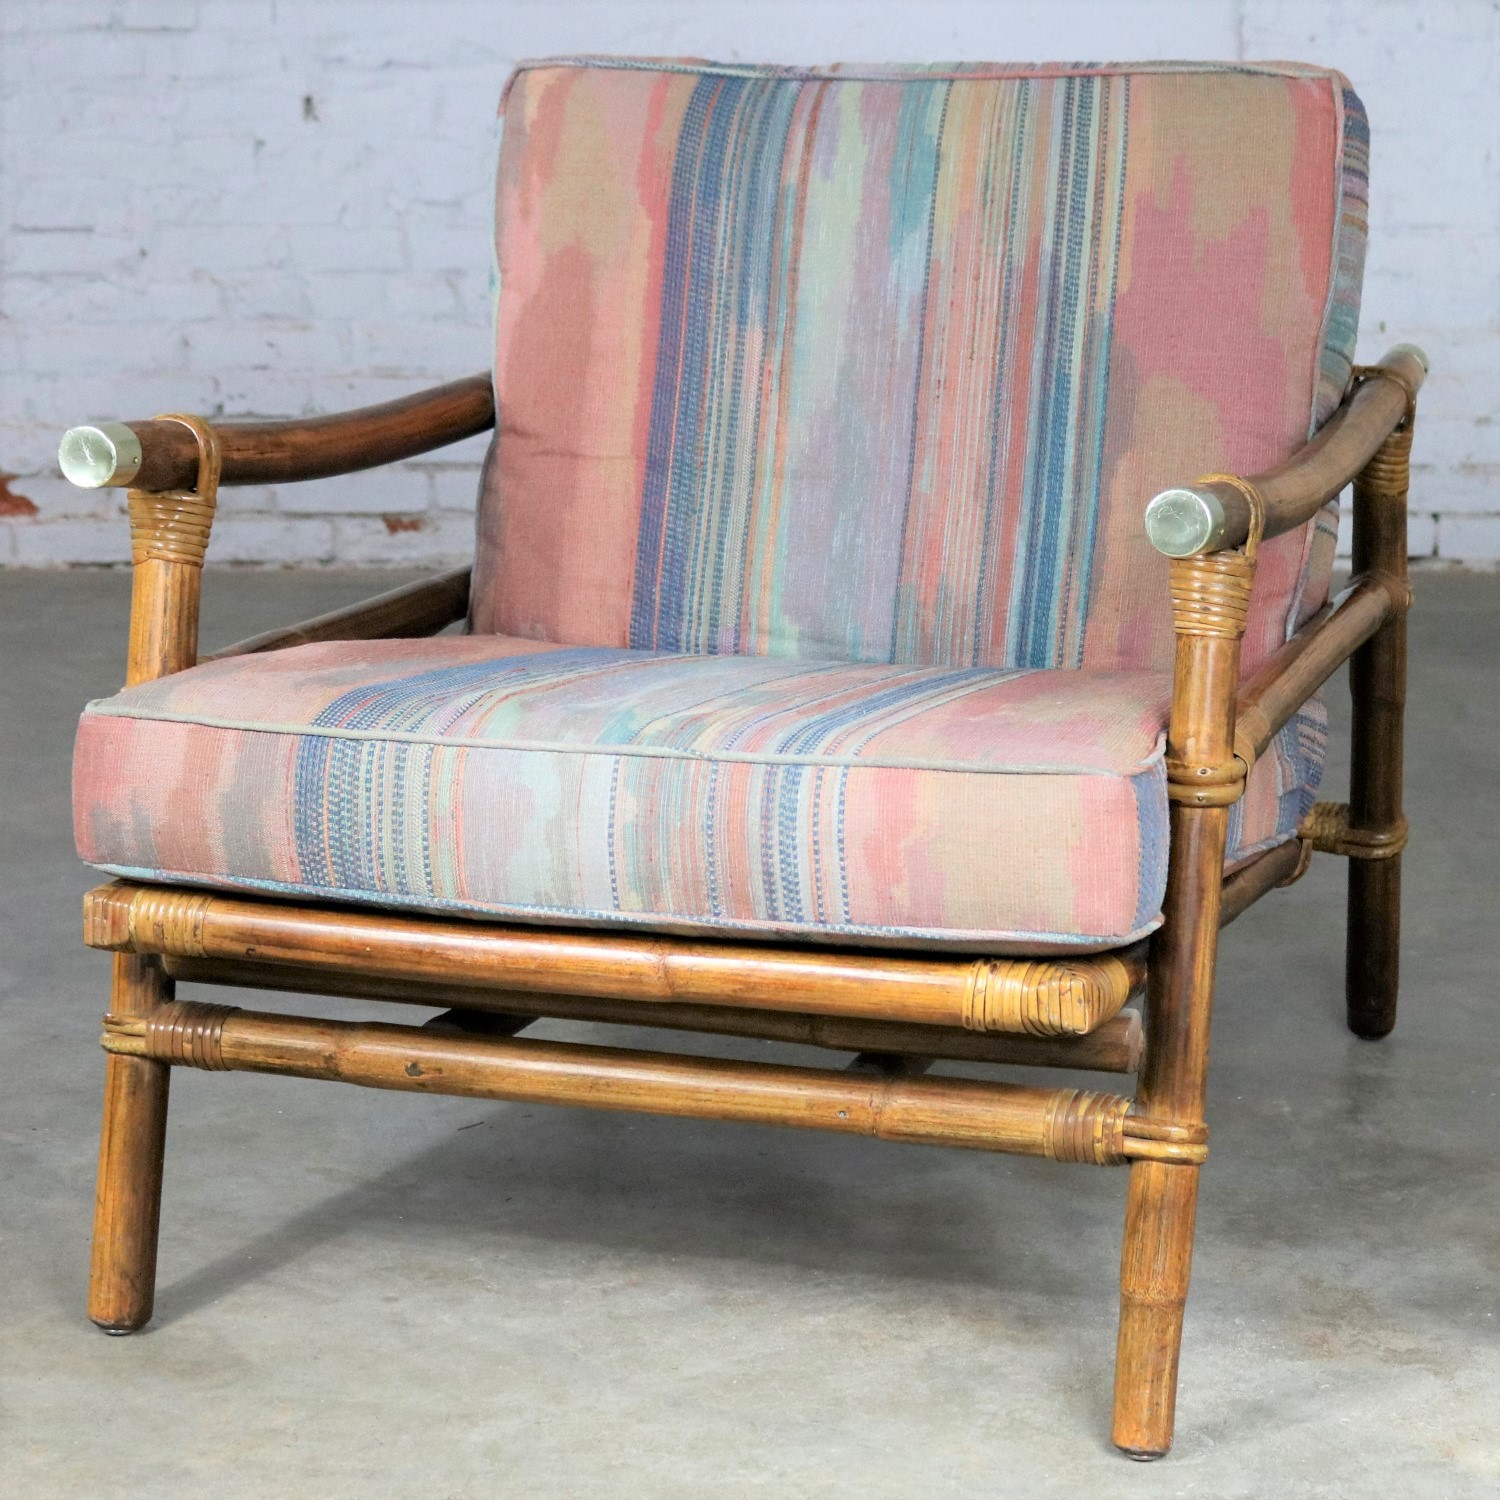 Vintage Ficks Reed Rattan Lounge Club Chair With Brass Accents By John  Wisner Campaign Style With Rattan Lounge